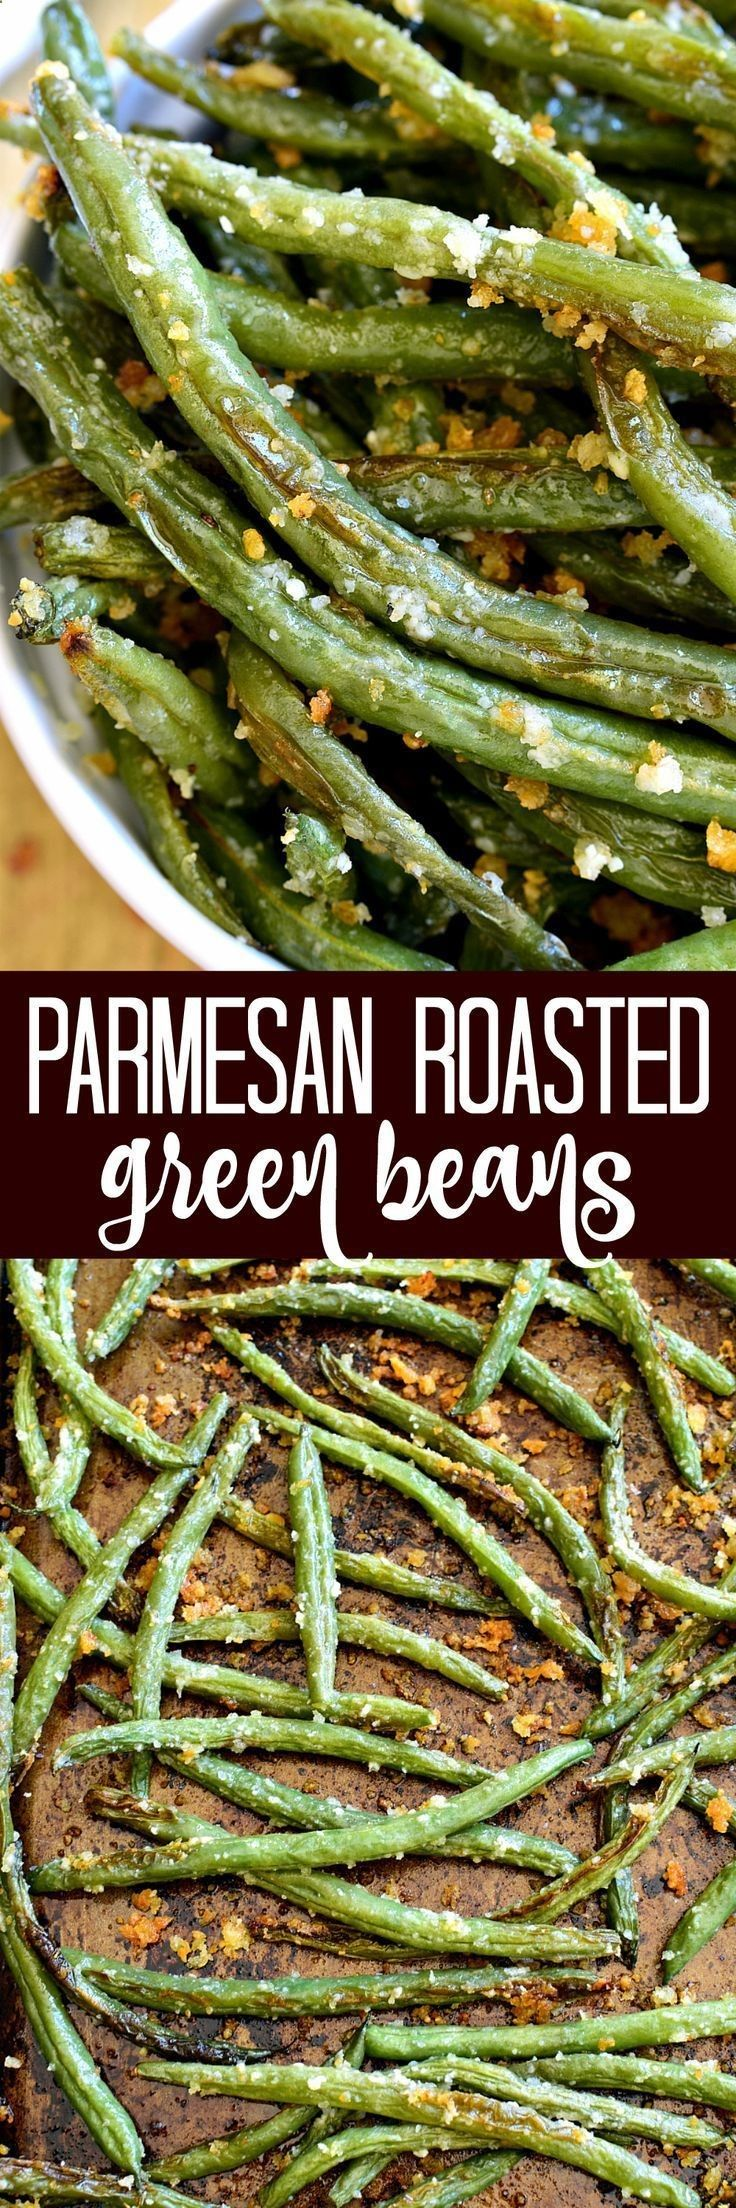 nice These Parmesan Roasted Green Beans are the most delicious way to enjoy fresh gre...by dezdemooncooking4...